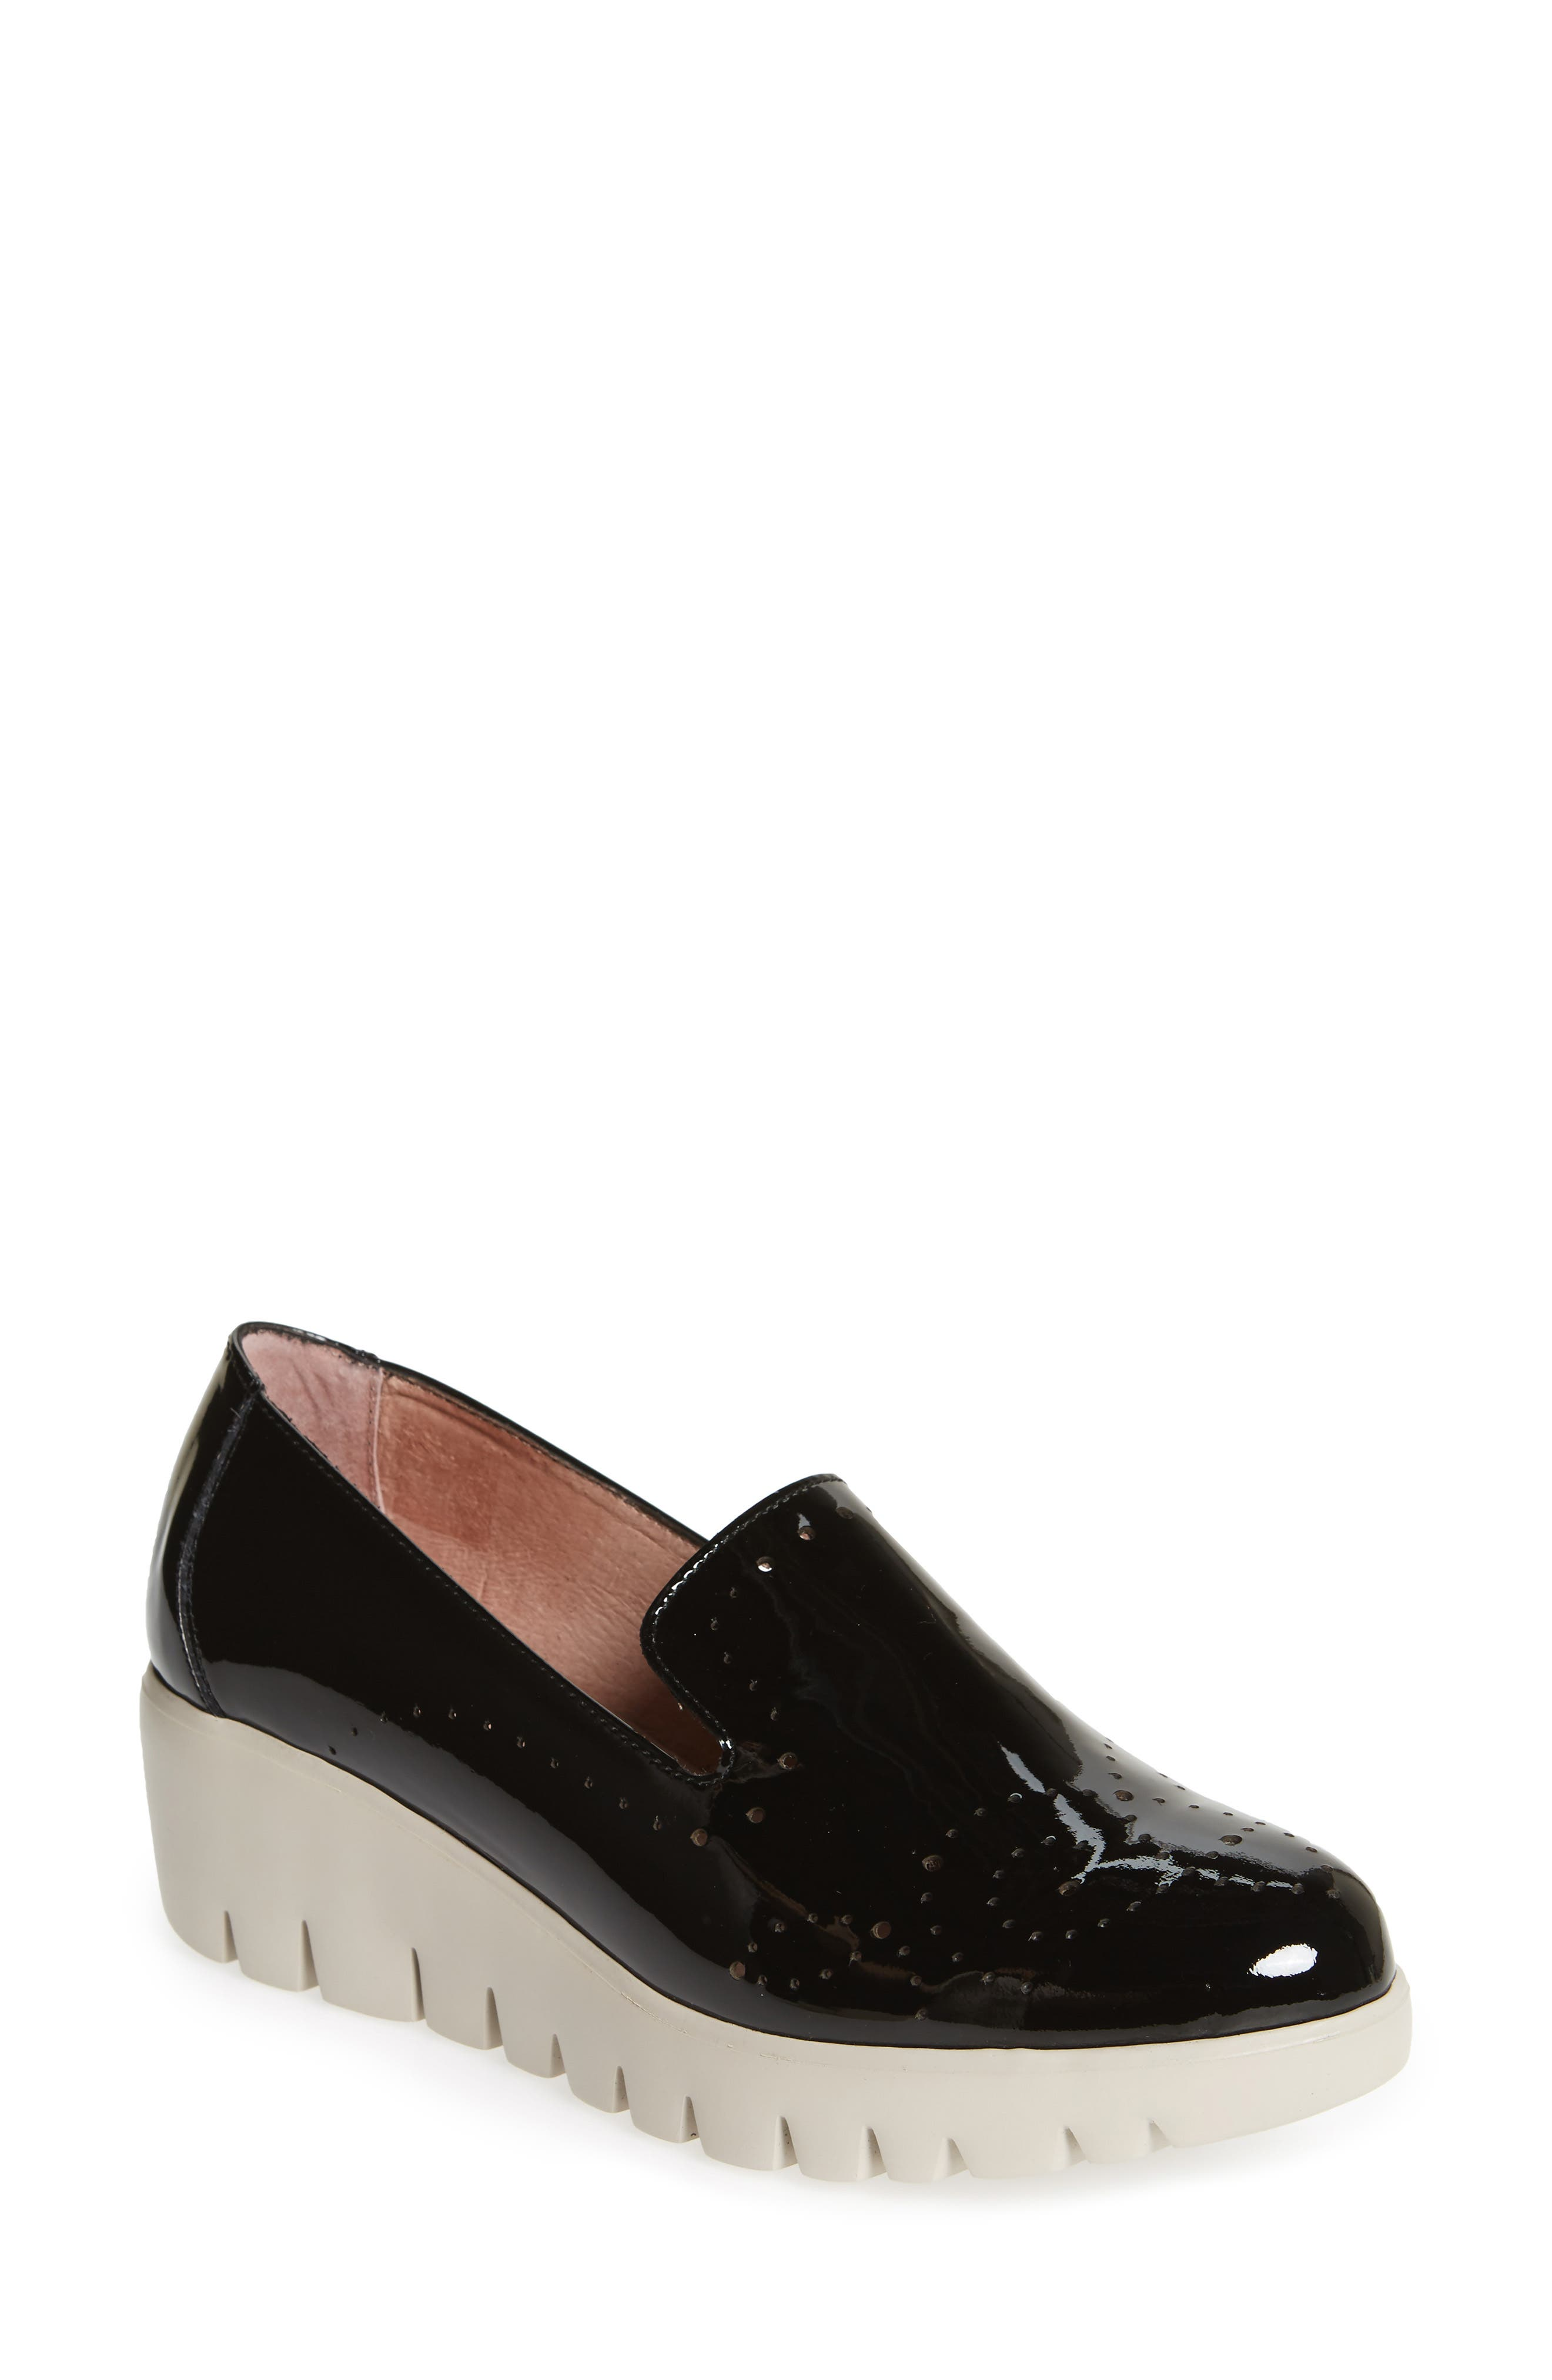 C-33114 Loafer Wedge,                         Main,                         color, BLACK LEATHER